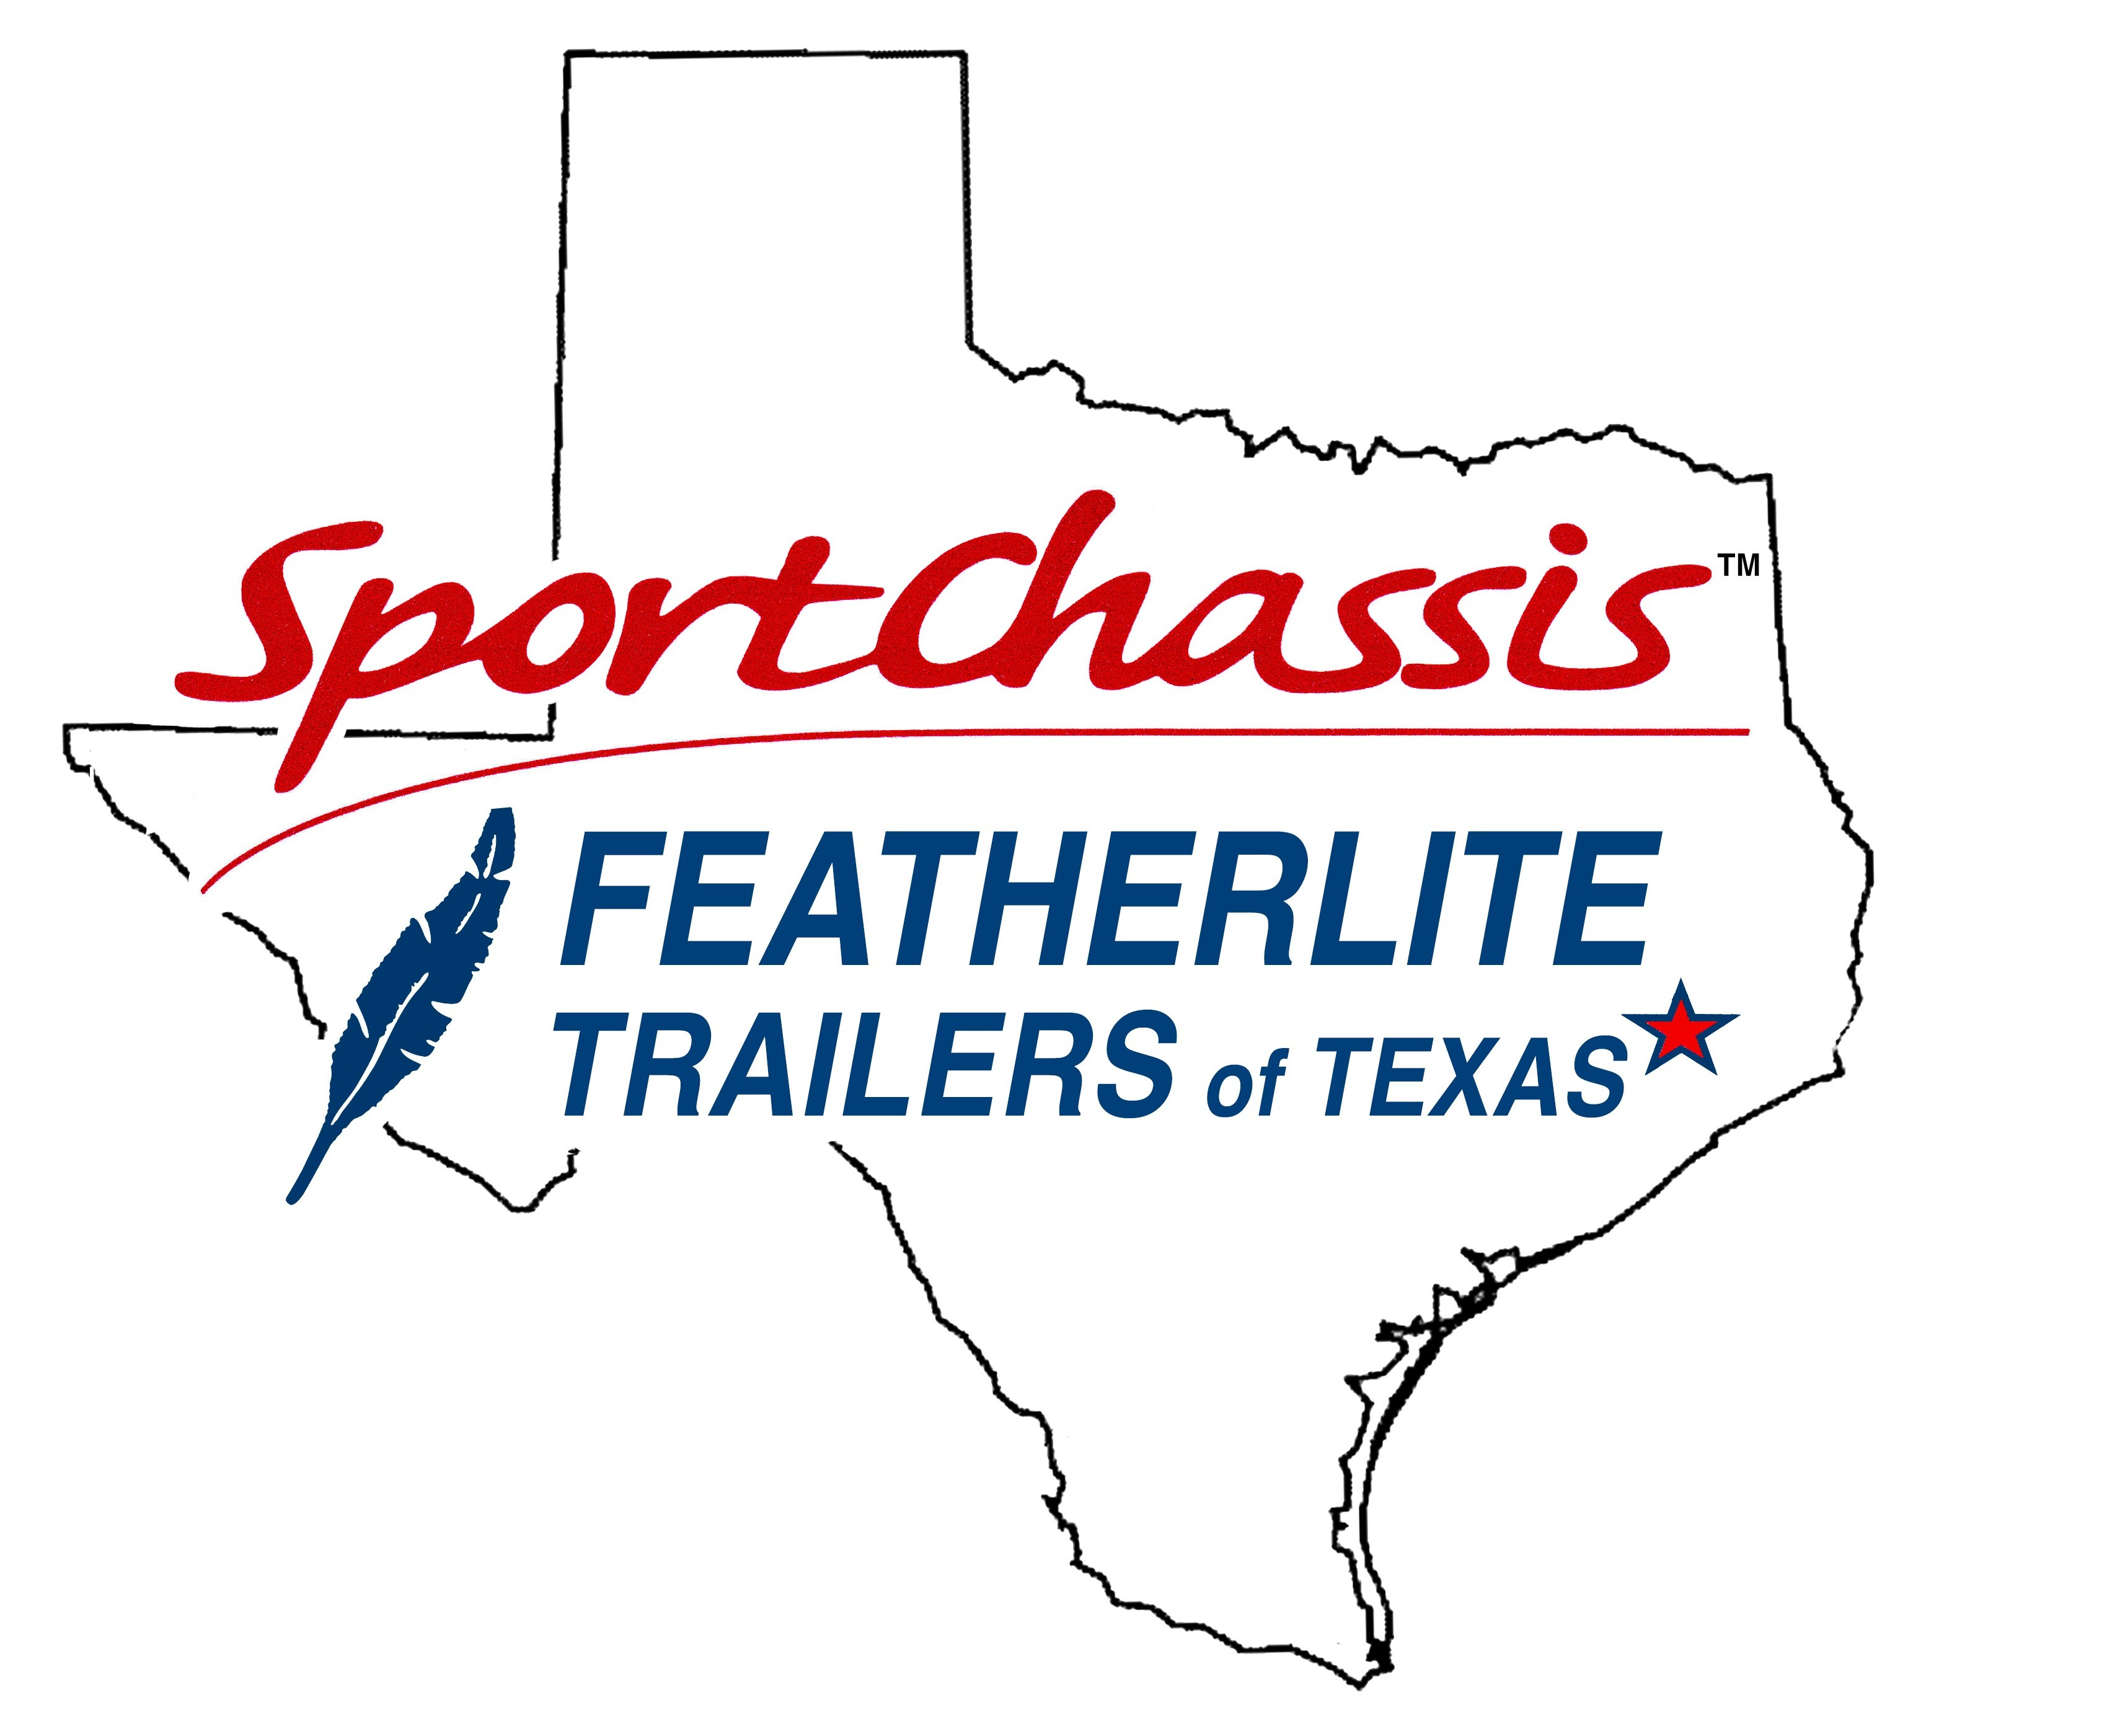 SPORTCHASSIS FEATHERLITE TRAILER